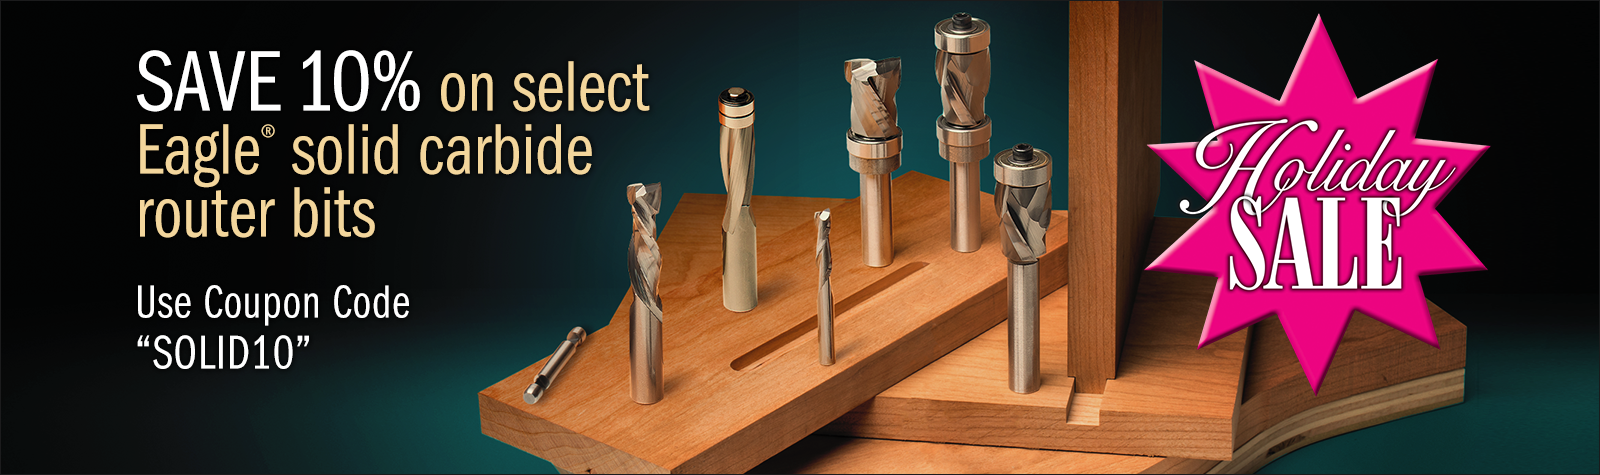 10% Savings on ALL Solid Carbide Router Bits